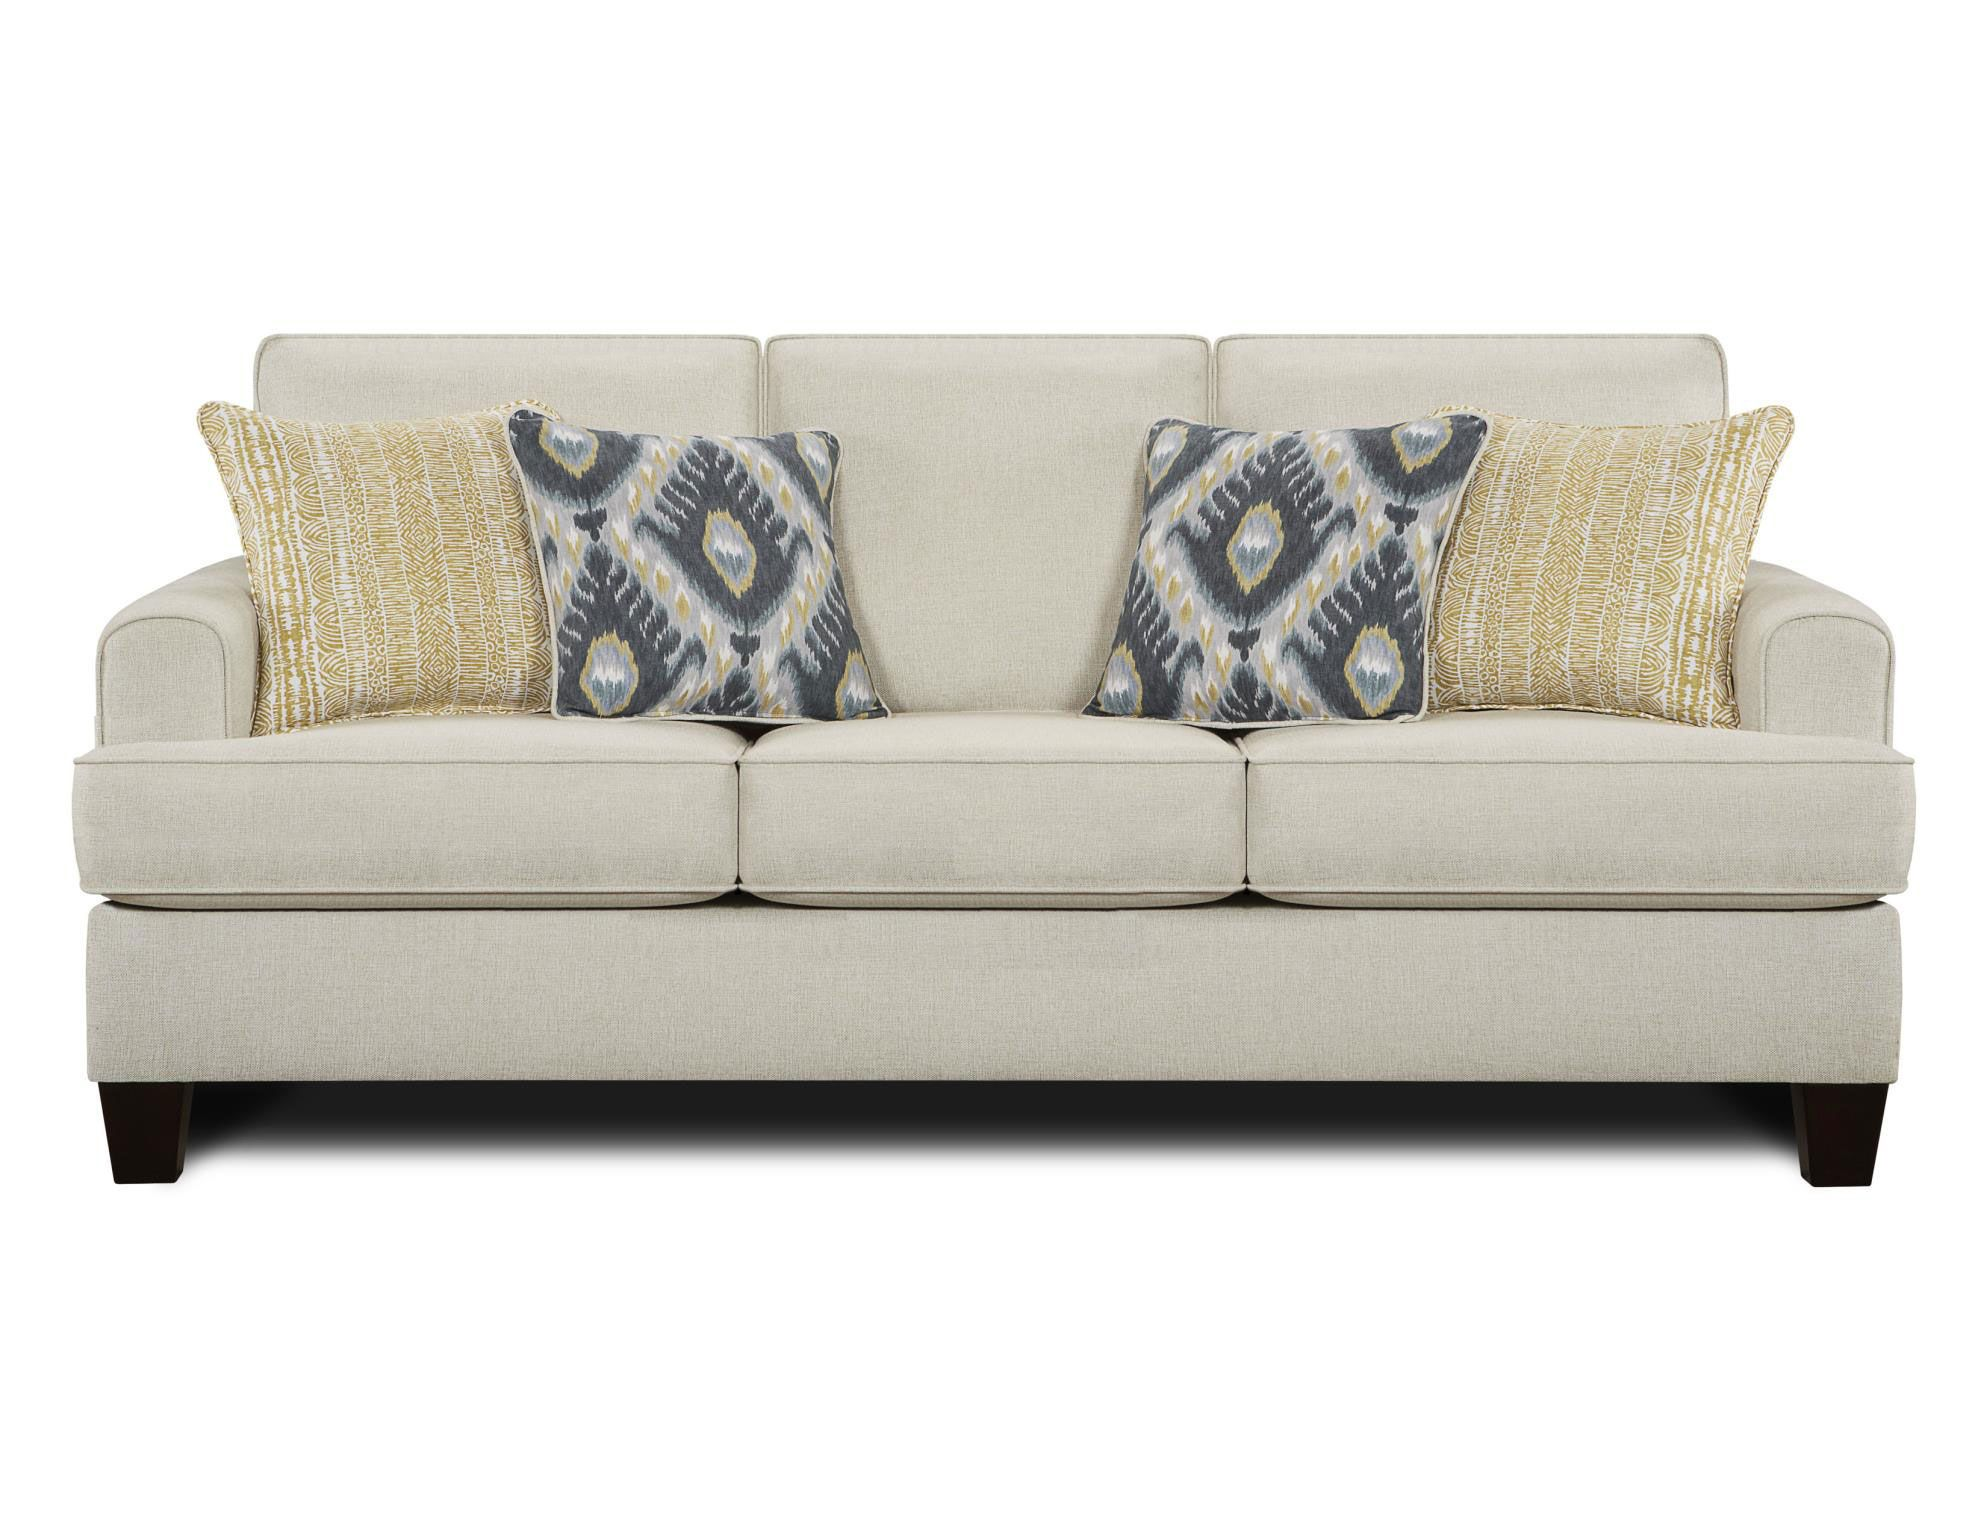 Couches With Storage An Image To Enlarge Amazing